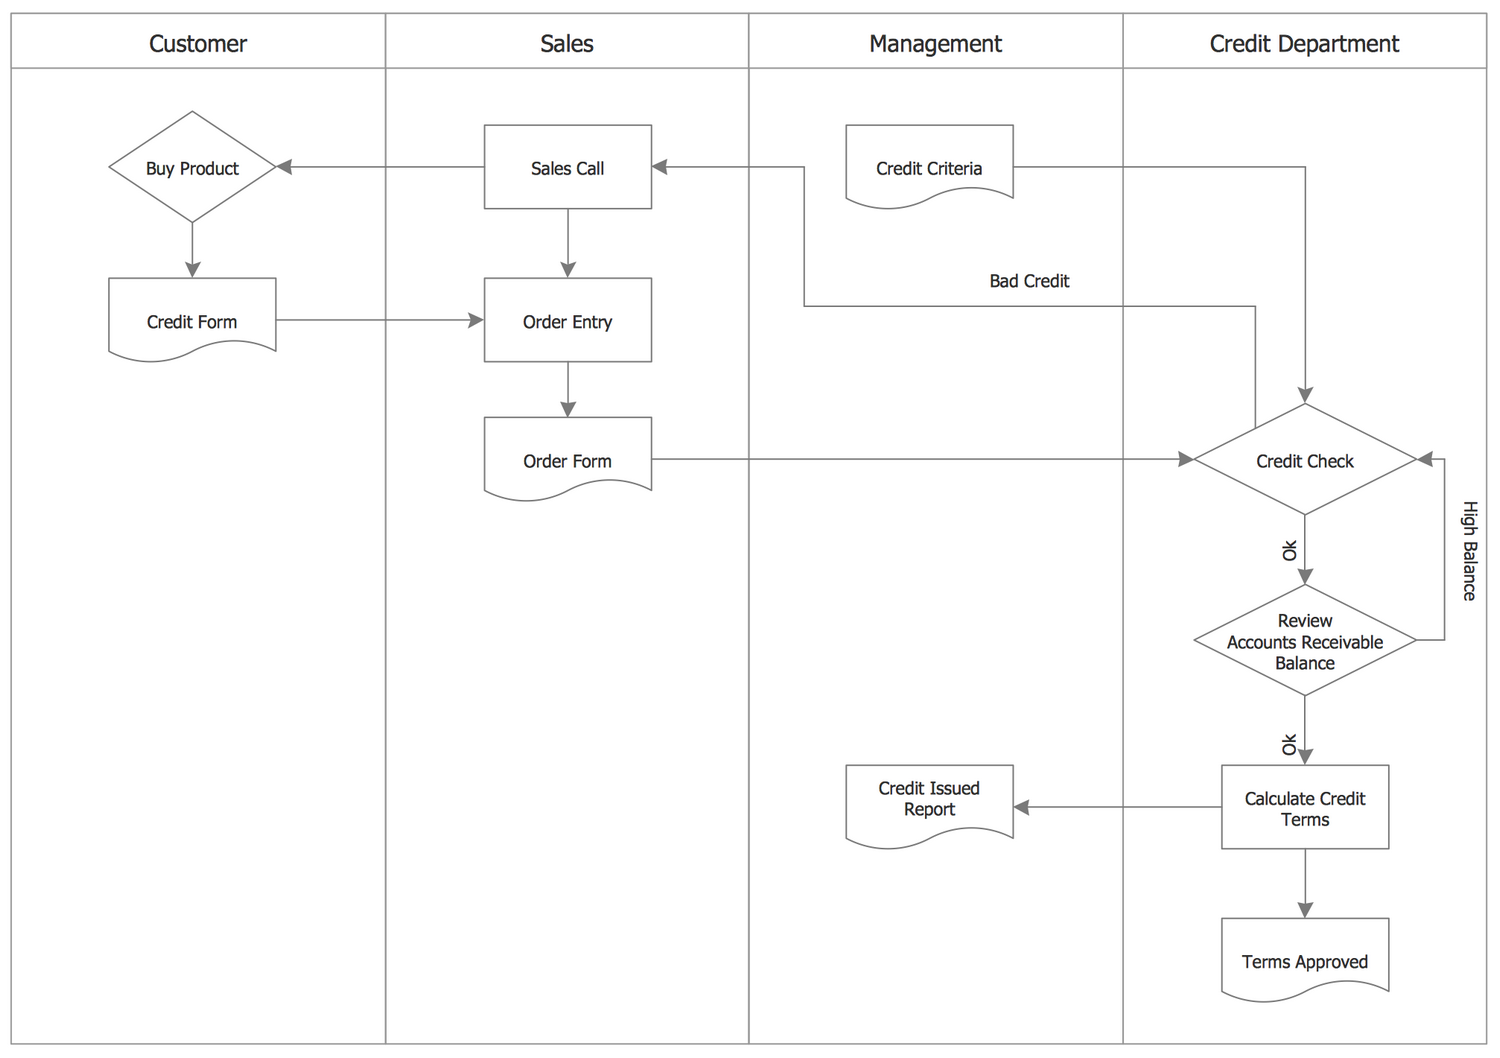 Process Flow — Credit Approval Process